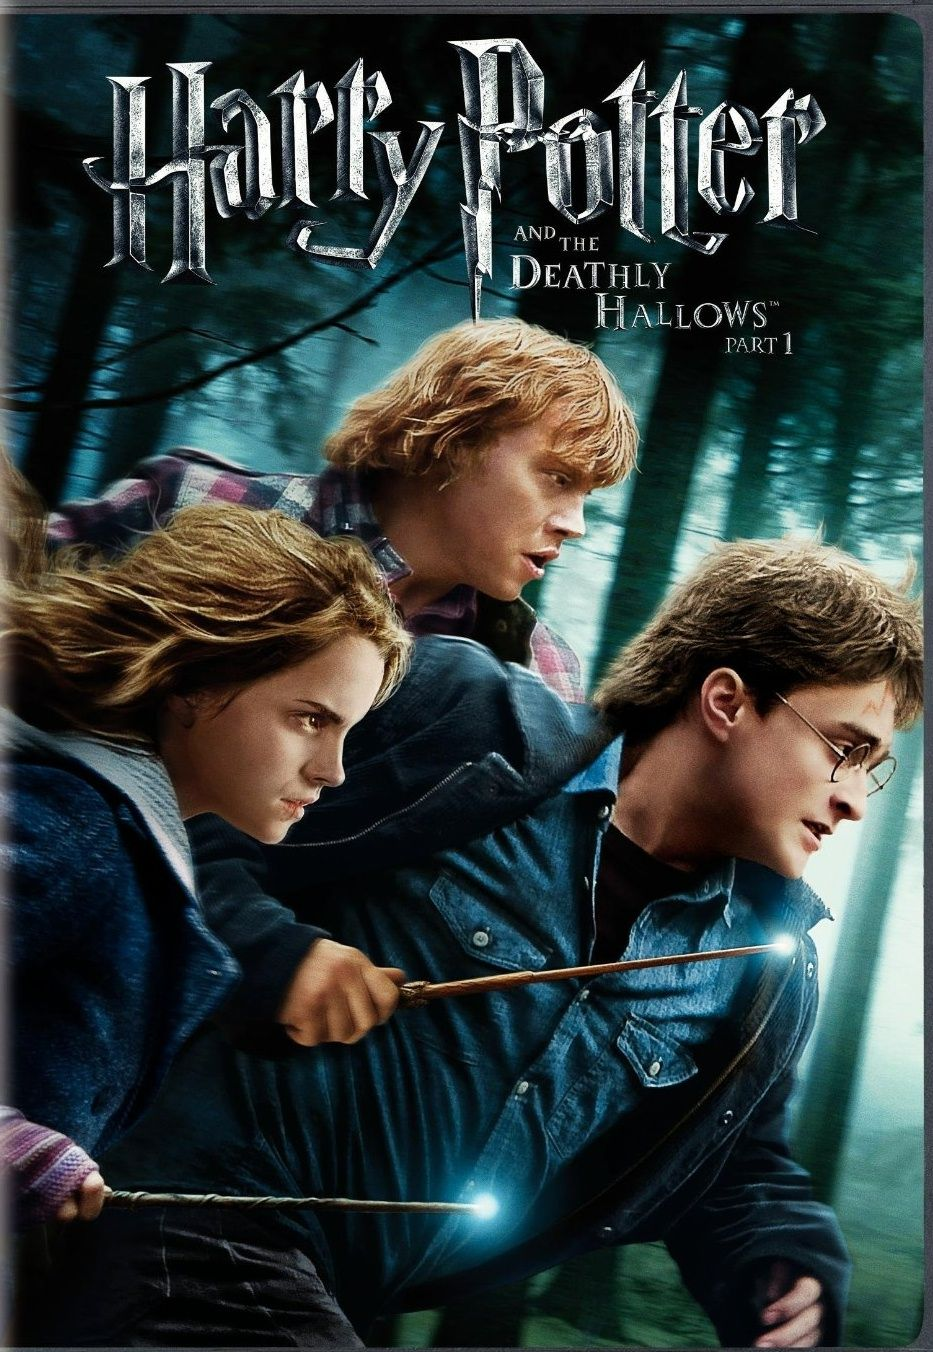 Harry Potter 7 Part 1 On Dvd Deathly Hallows Part 1 Harry Potter Harry Potter Movies